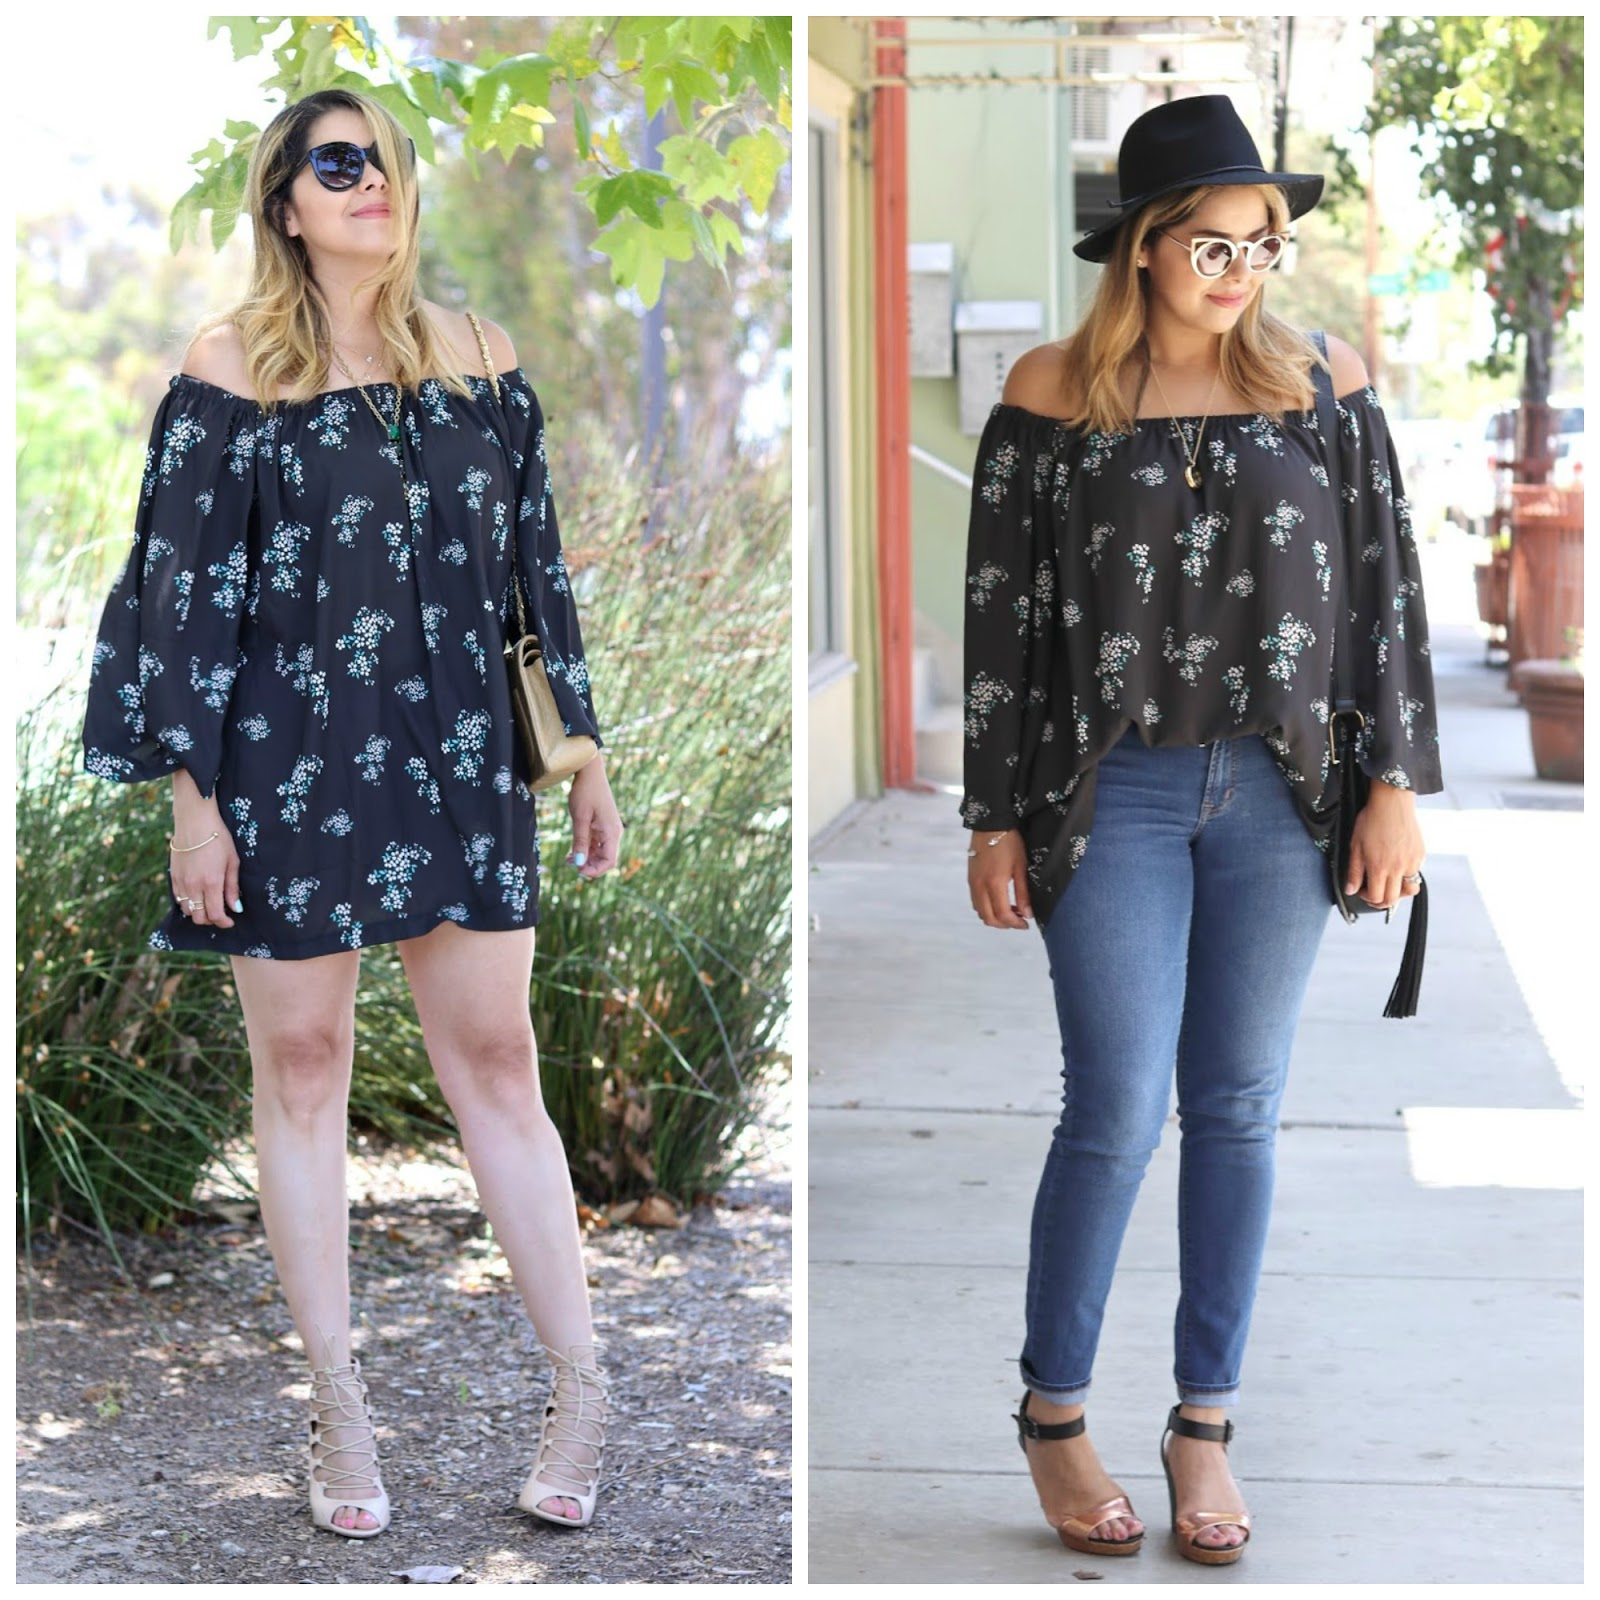 how to dress a dress as a top, chicwish dress, san diego style bloggers, san diego fashion blogger, chicwish blogger